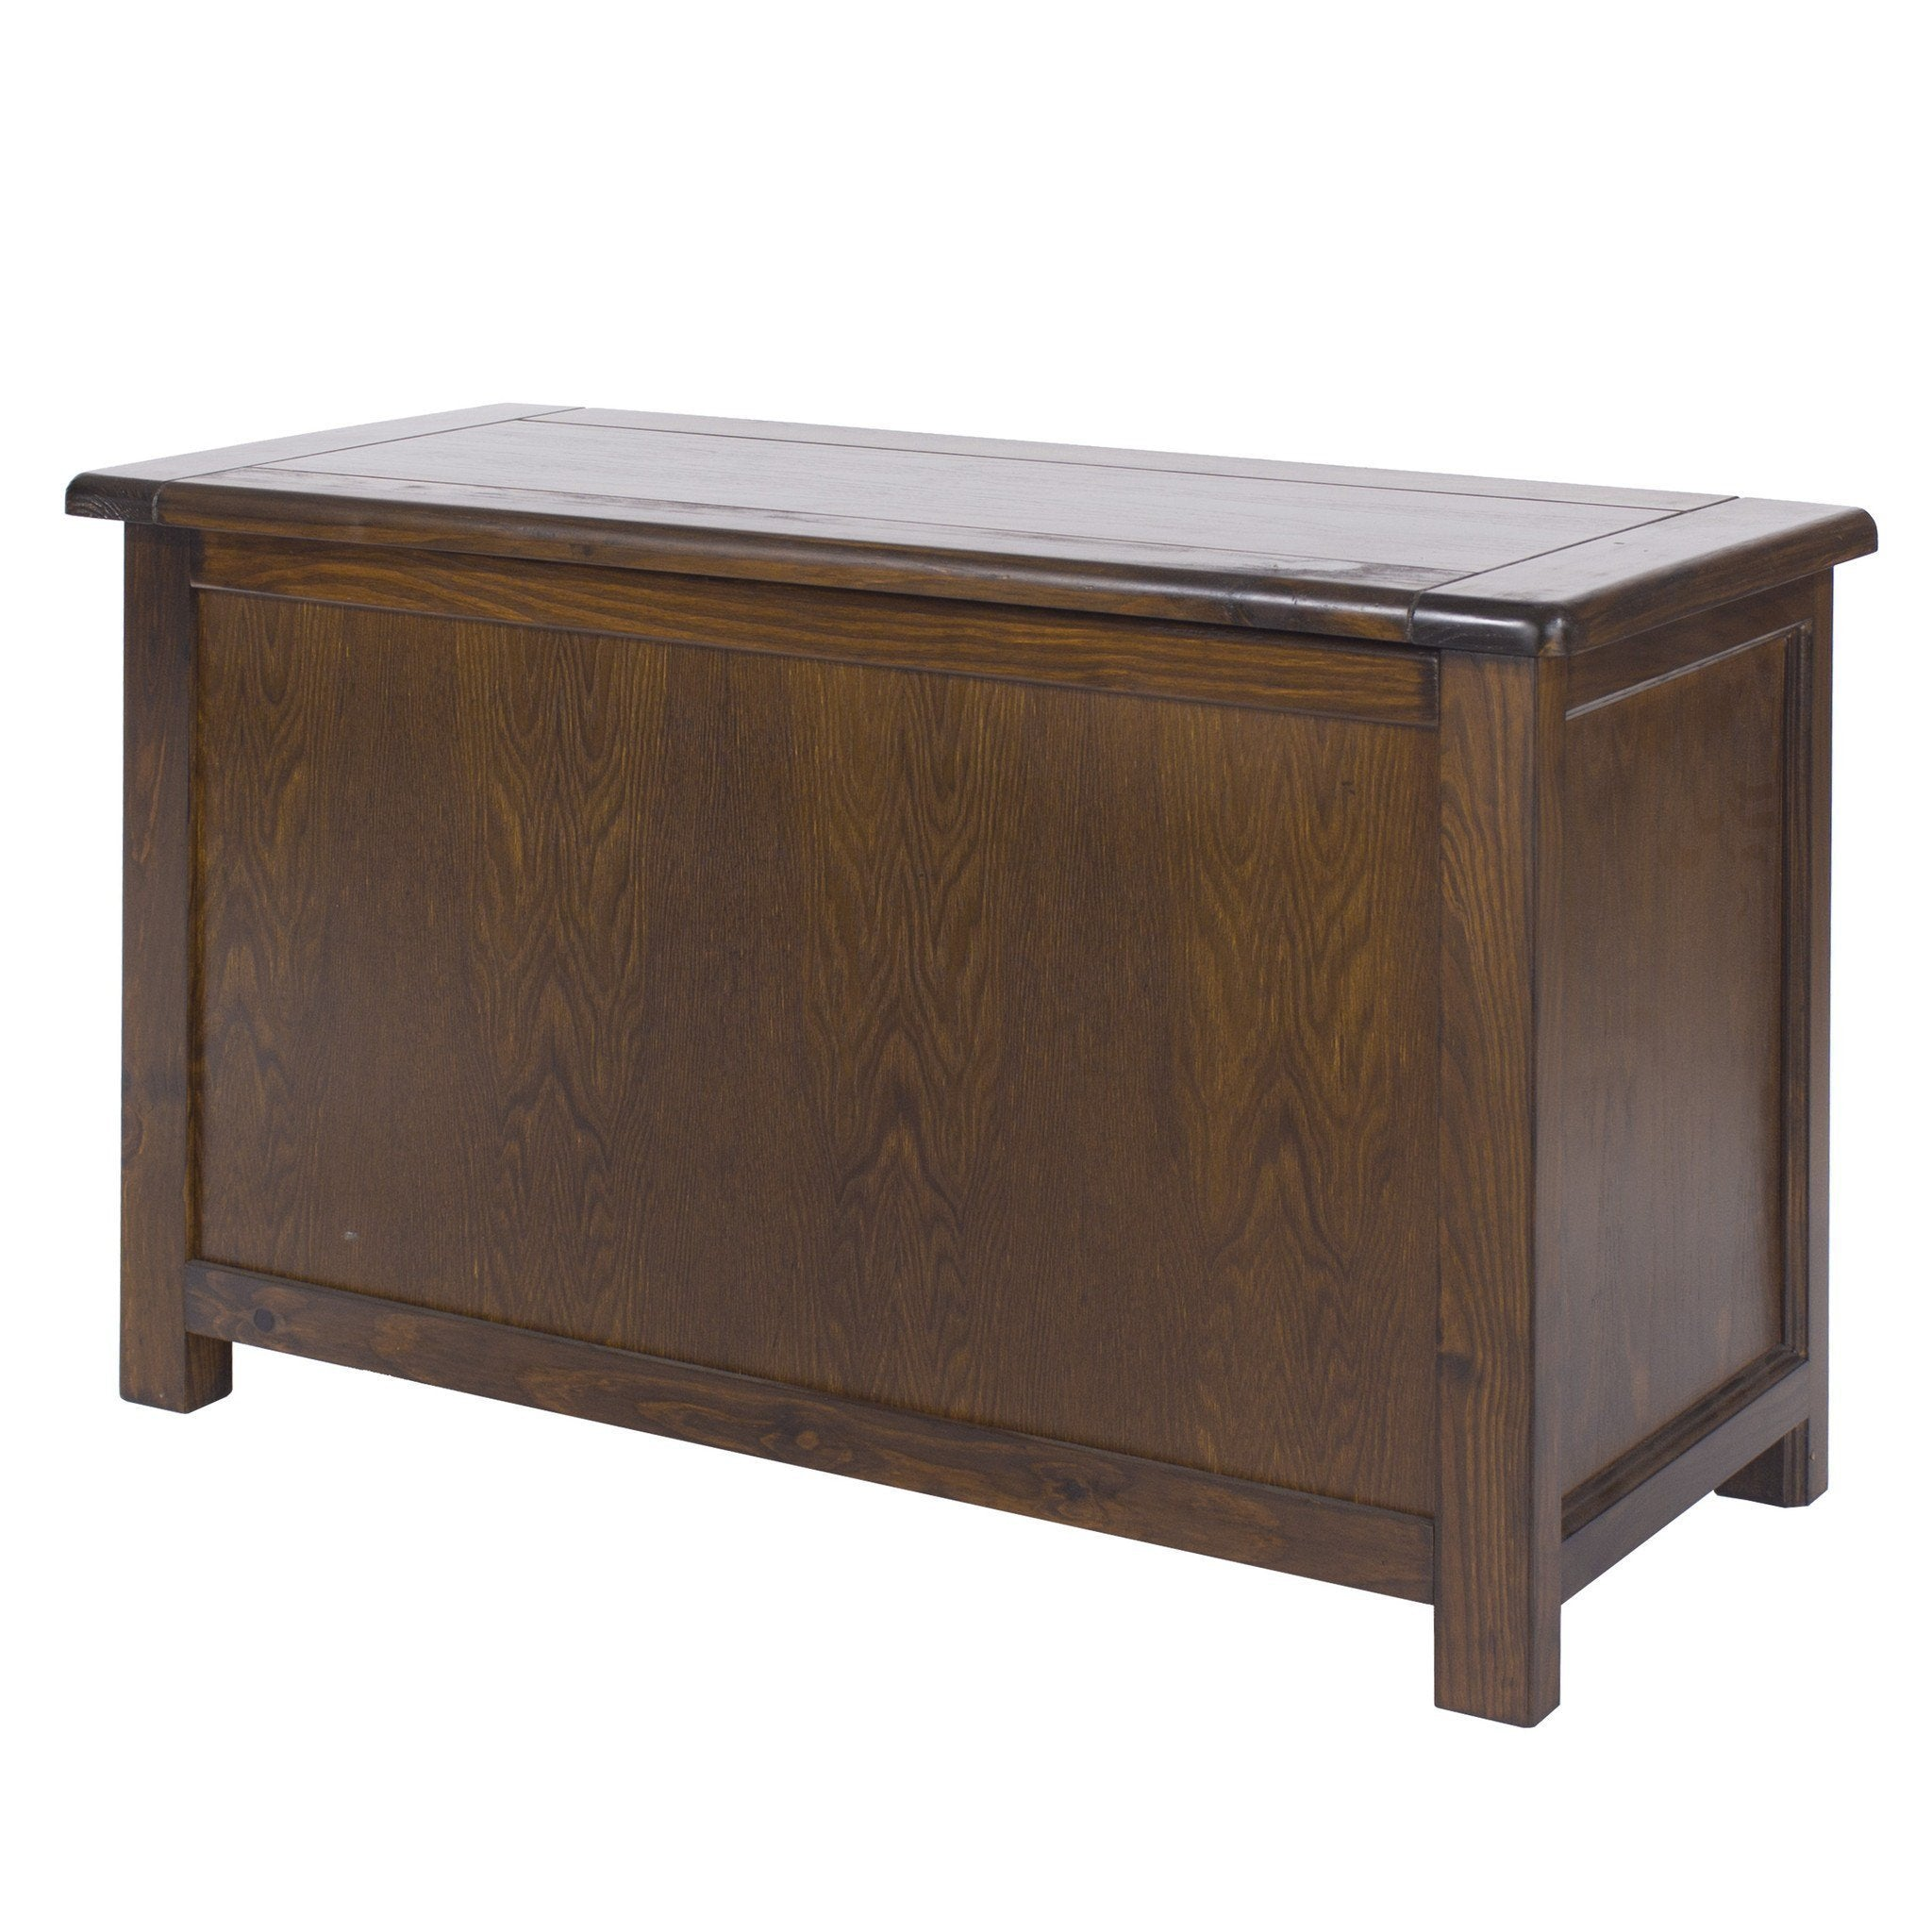 Nepal Dark Wood Blanket Box Ottoman-dark wood blanket box-core products-GoFurn Furniture Store Kent